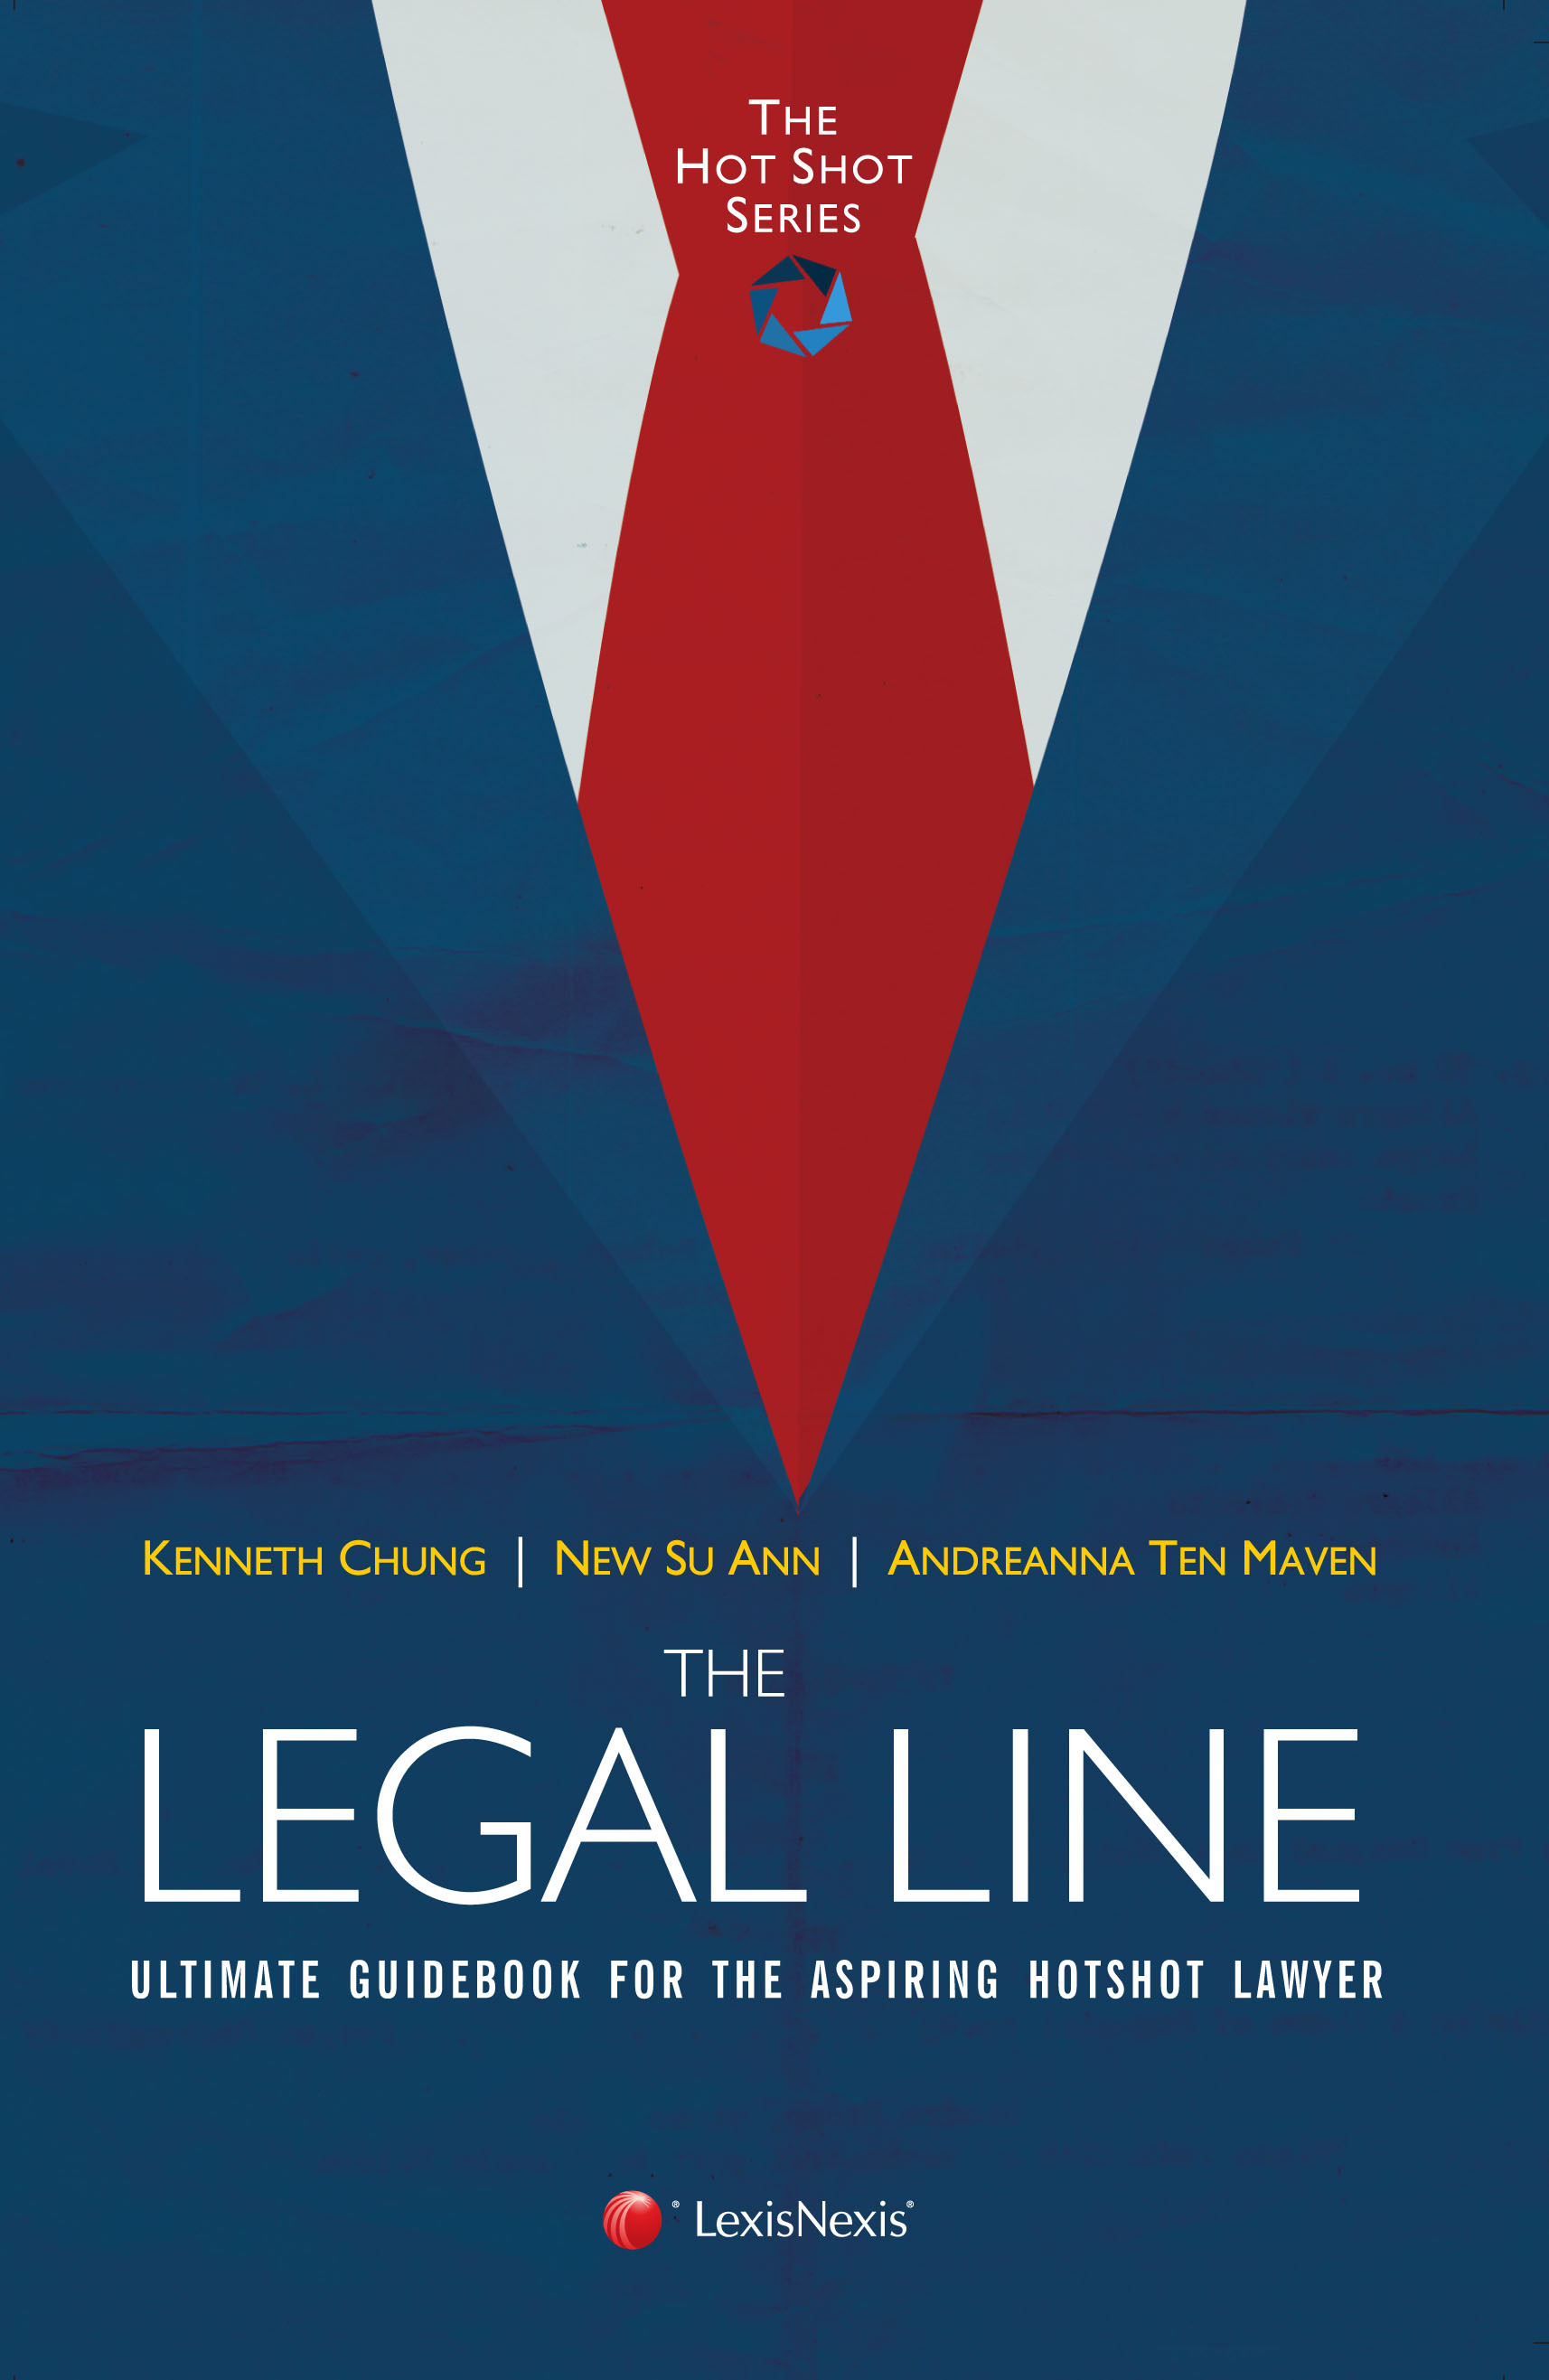 The Legal Line (The Hotshot Series, #1) Kenneth Chung